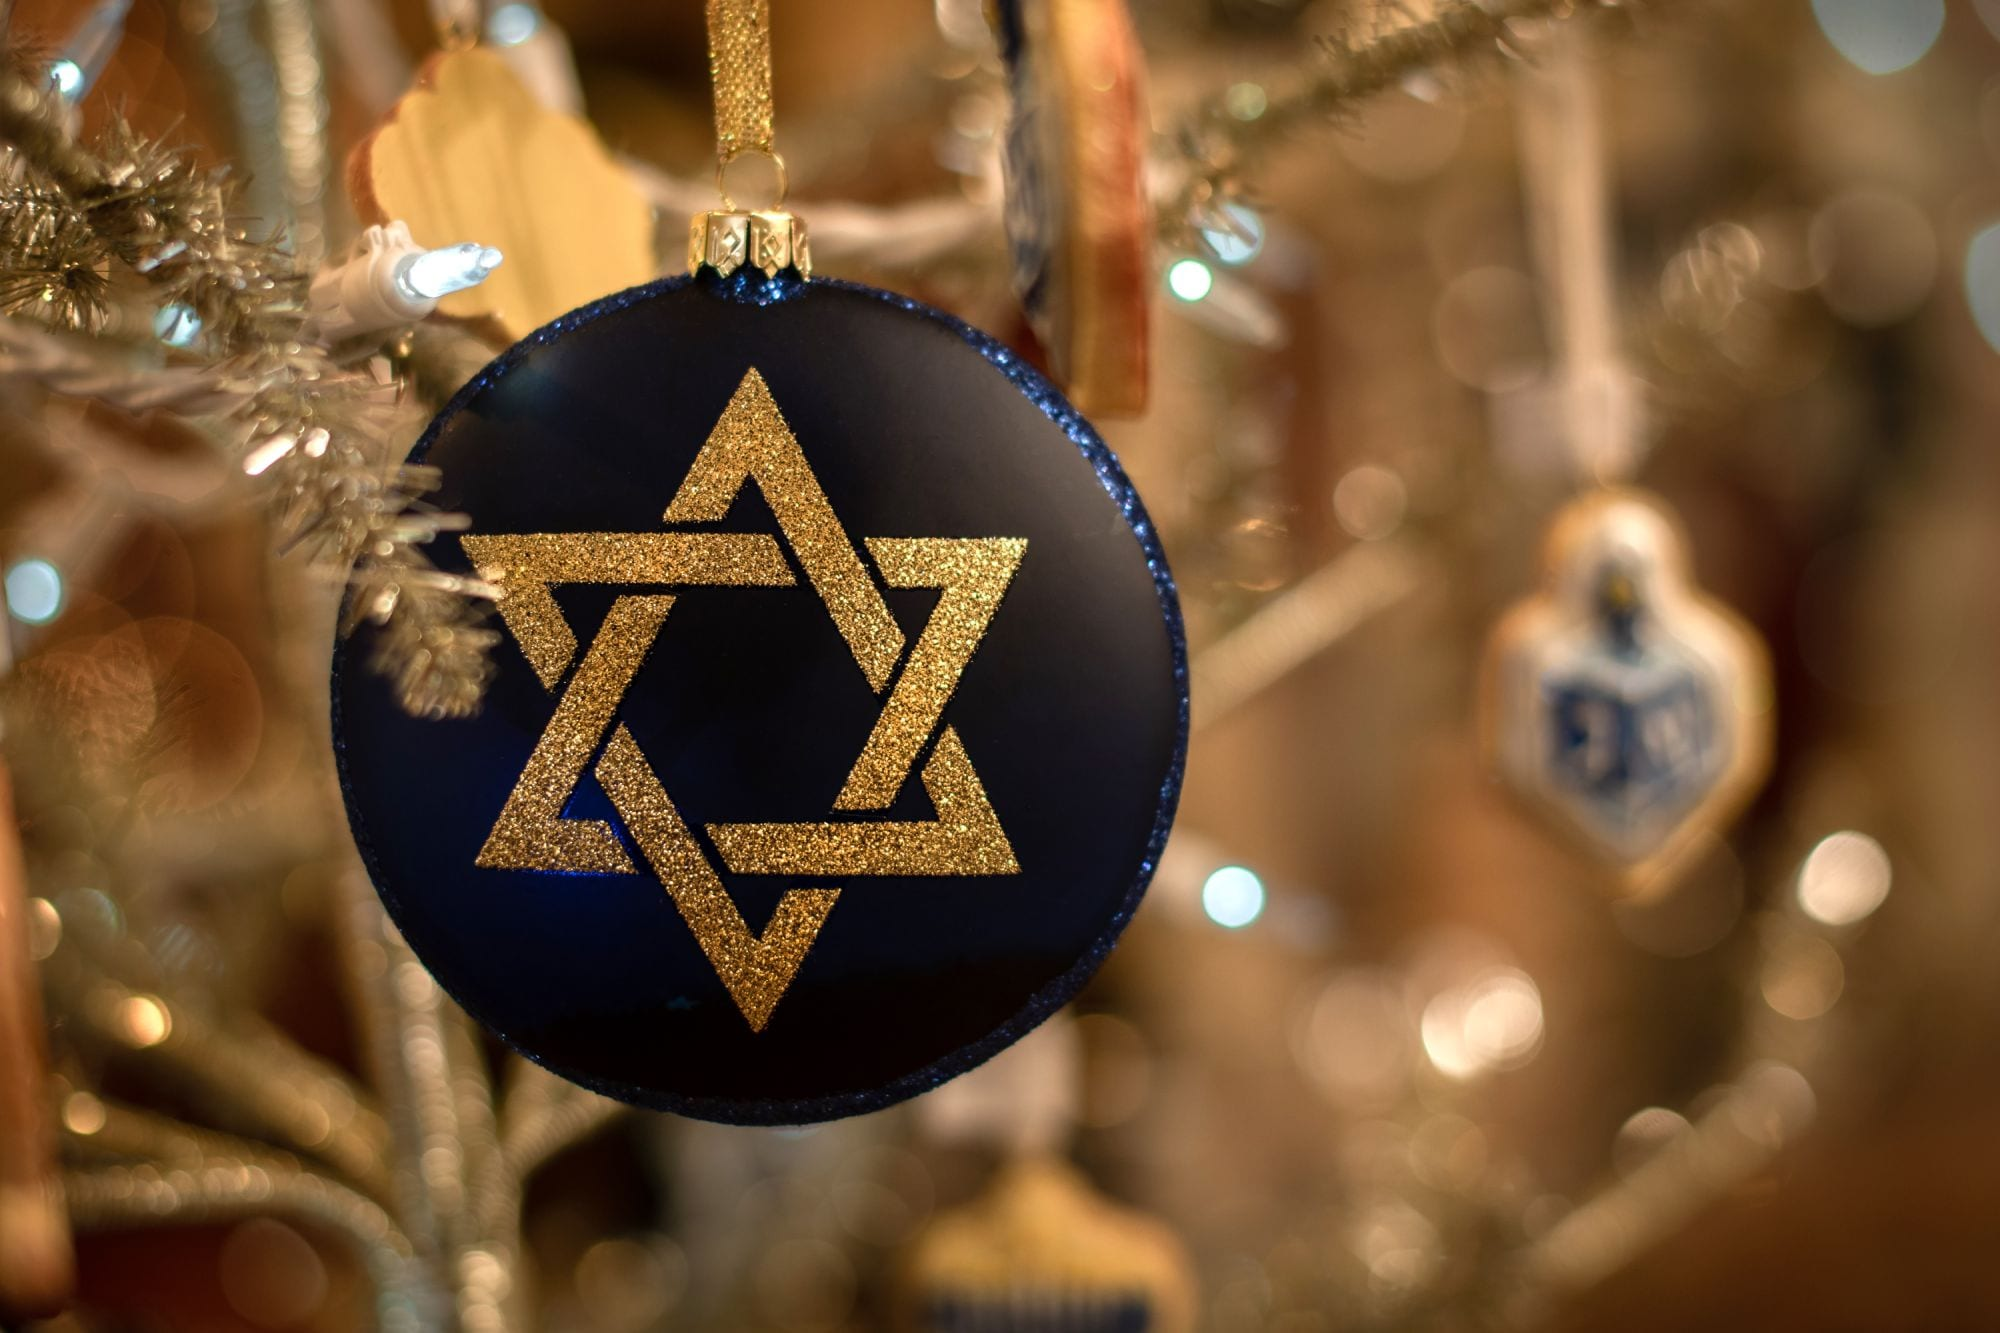 Jewish Star of David and dreidel decoration, nut free Hanukkah